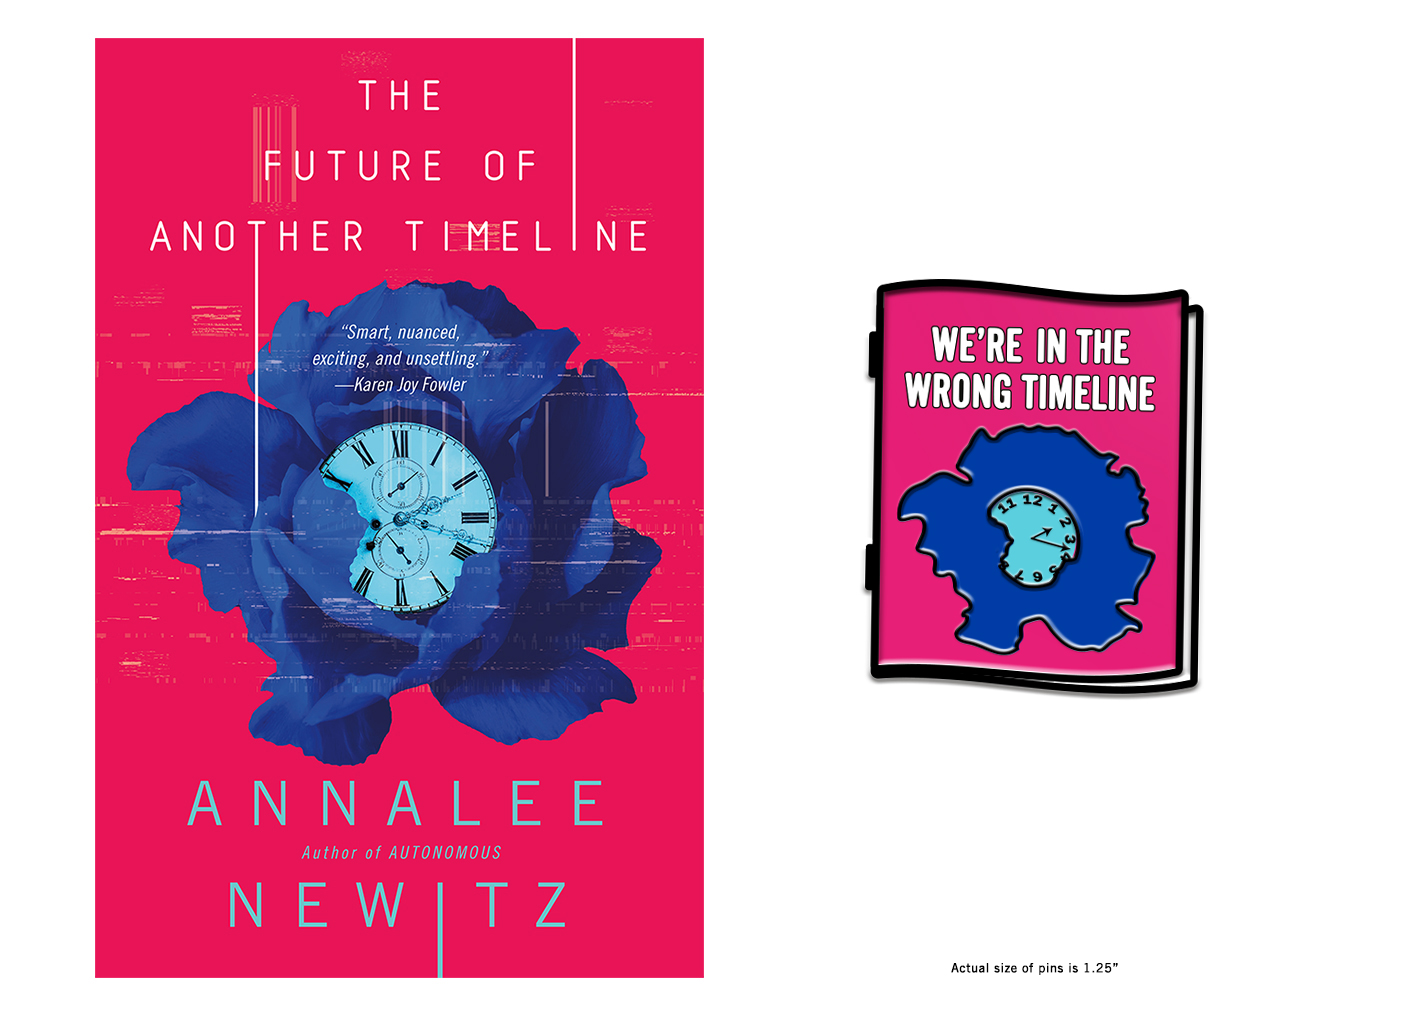 Book jacket for The Future of Another Timeline by Annalee Newitz beside englarged image of a promotional enamel pin